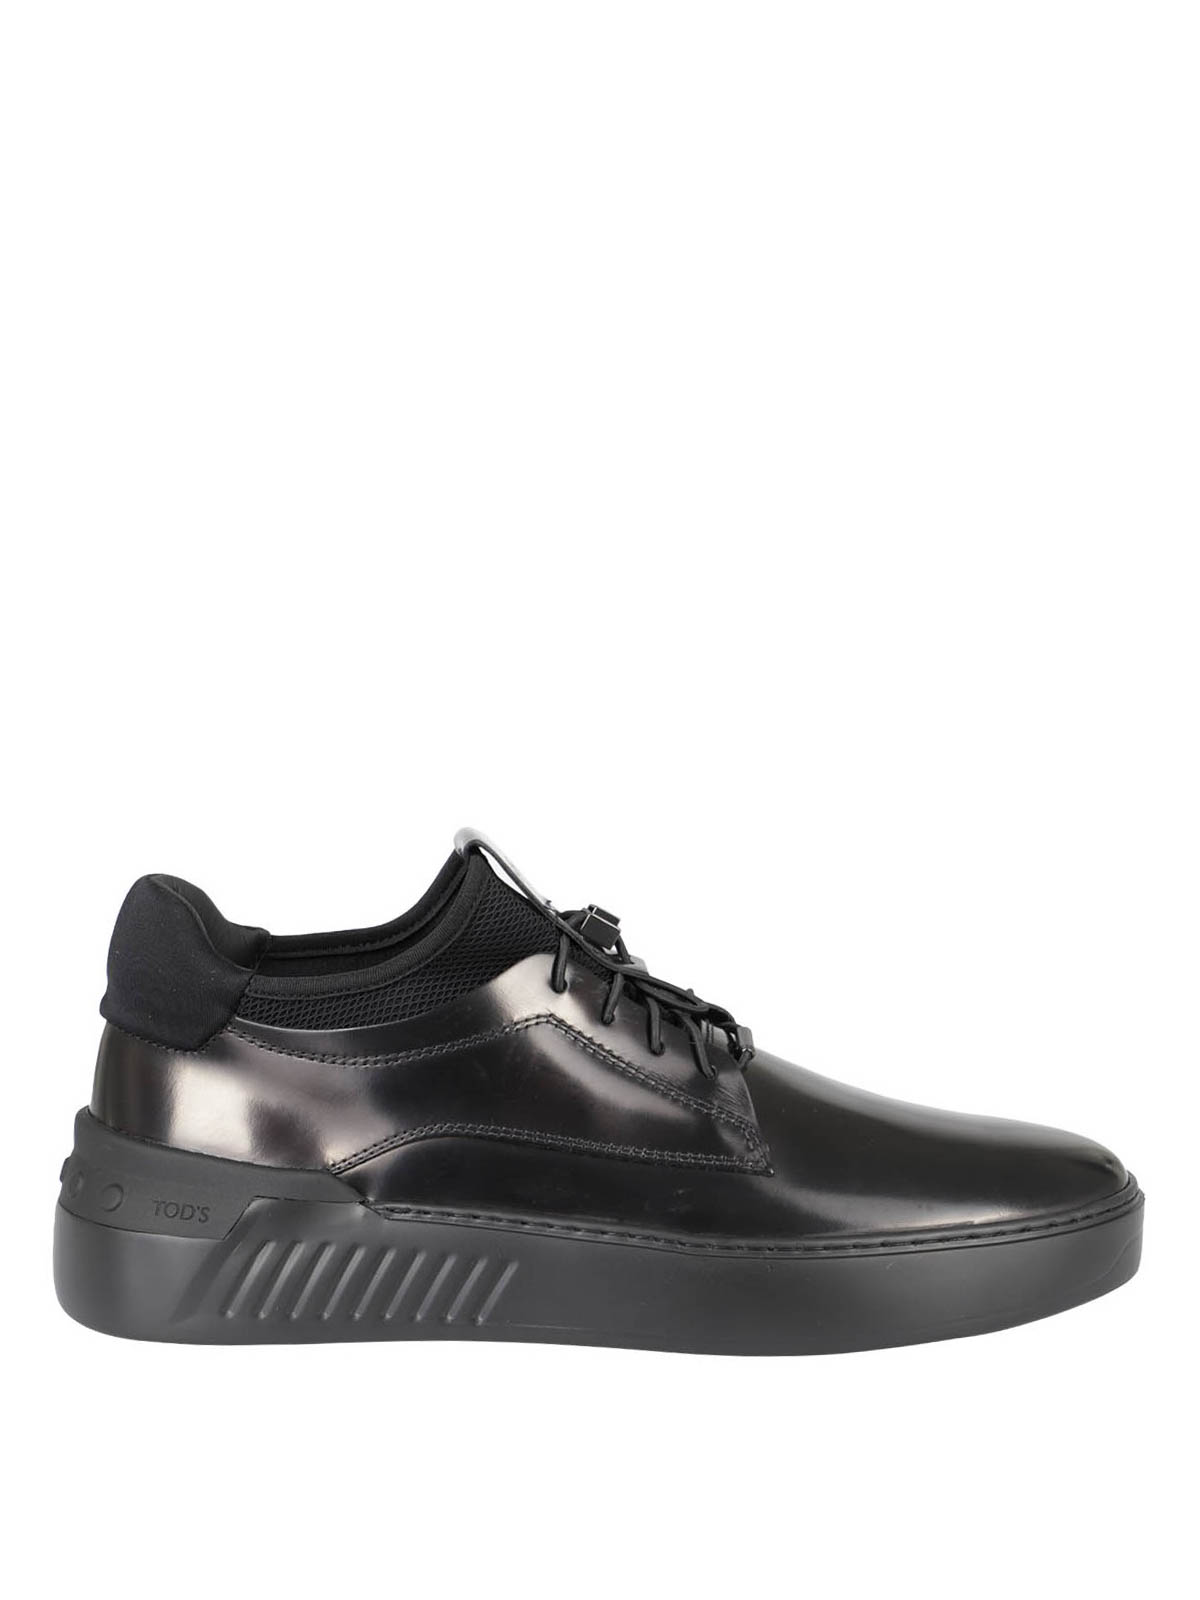 Tod's LEATHER AND MESH SNEAKERS